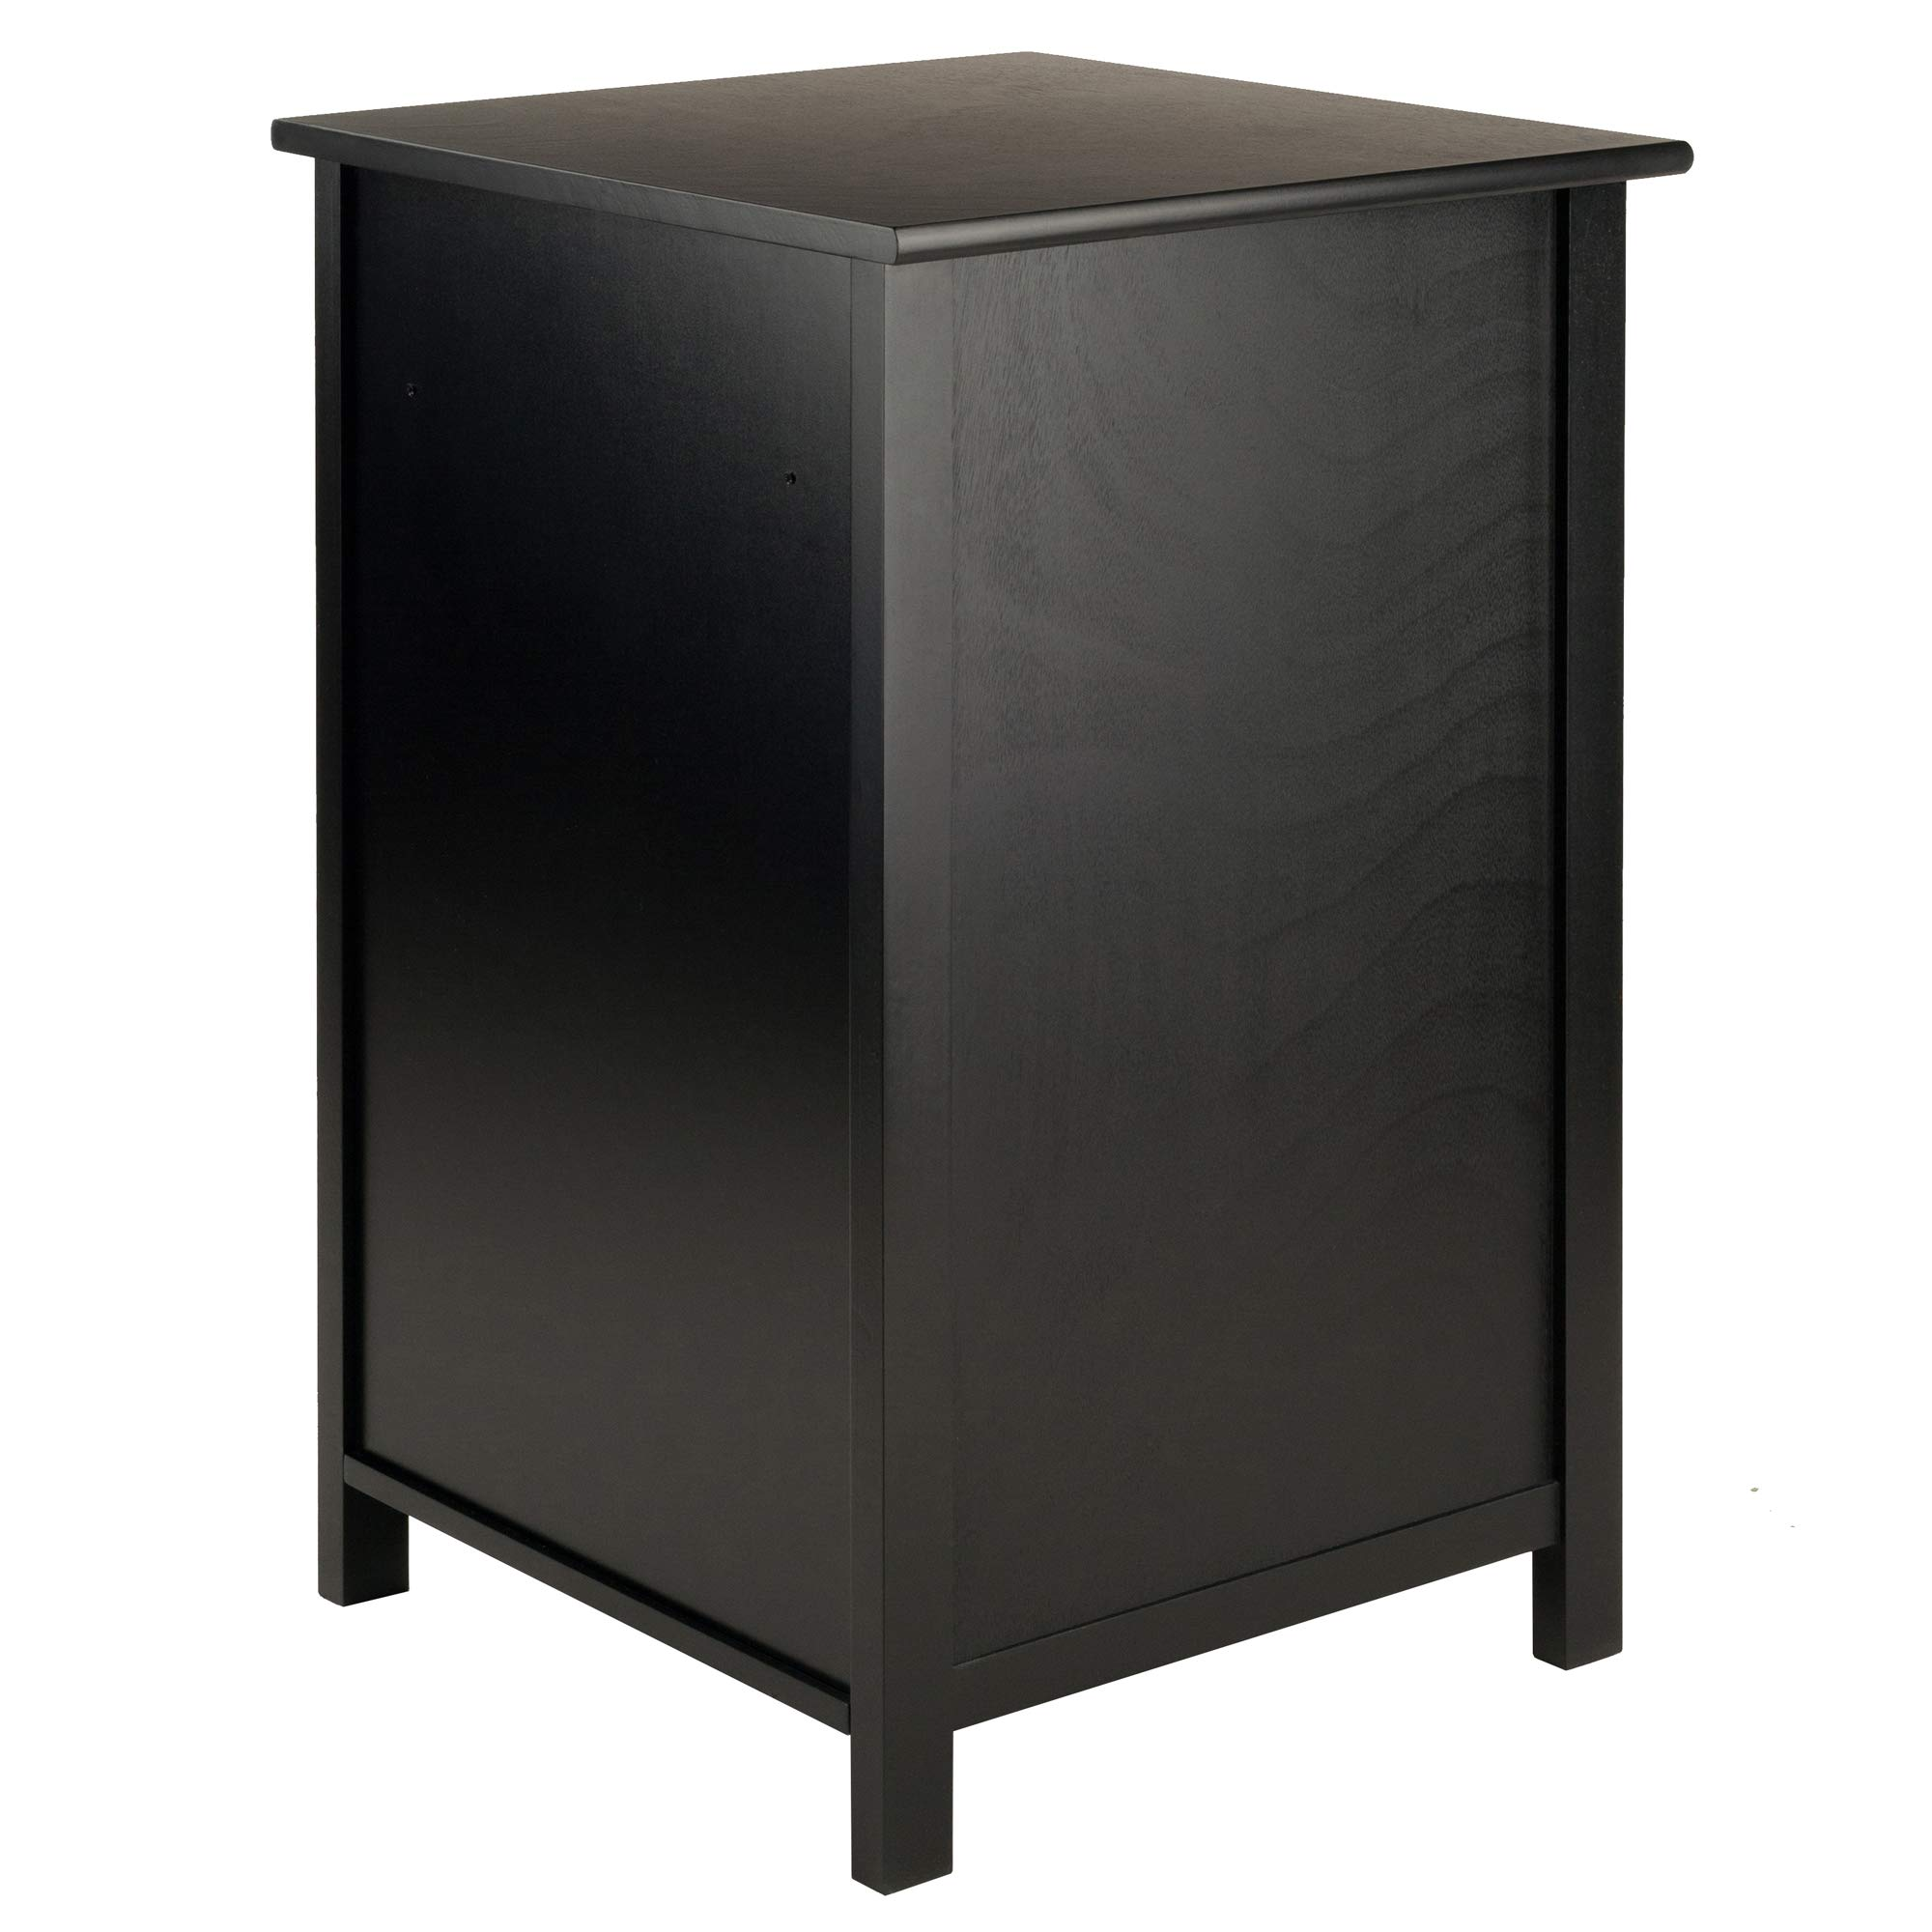 Winsome Wood 22321 Delta File Cabinet Black Home Office, by Winsome Wood (Image #7)